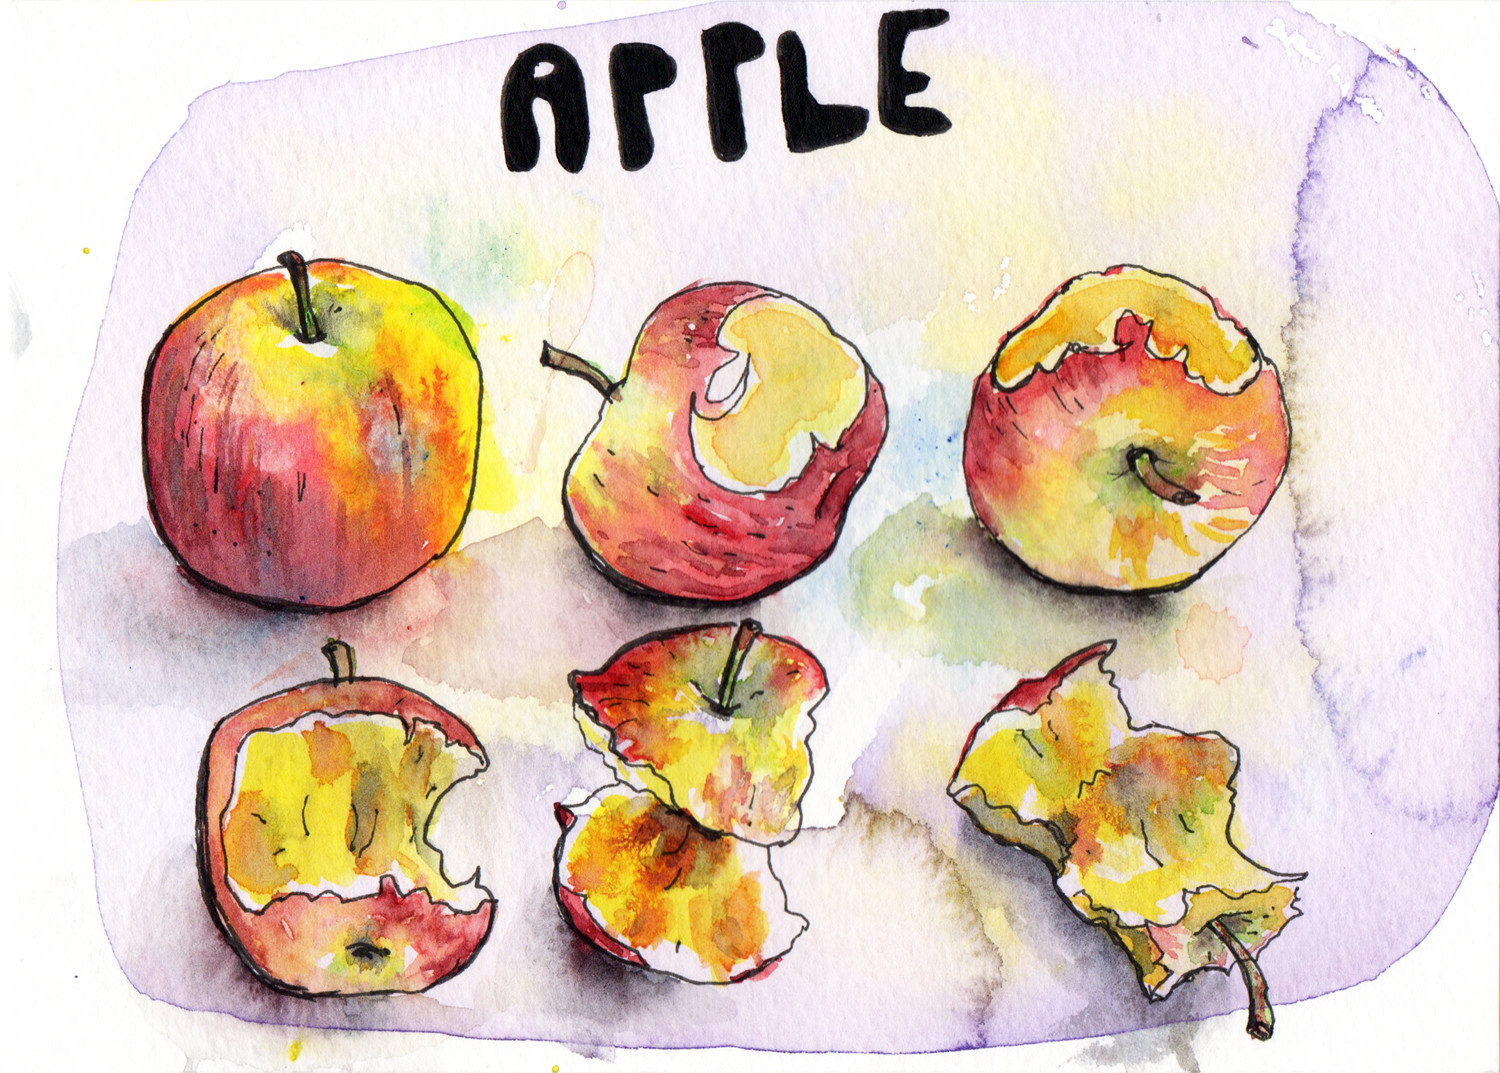 Daily Drawings Apples in Pen and Watercolour by Sophie Peanut